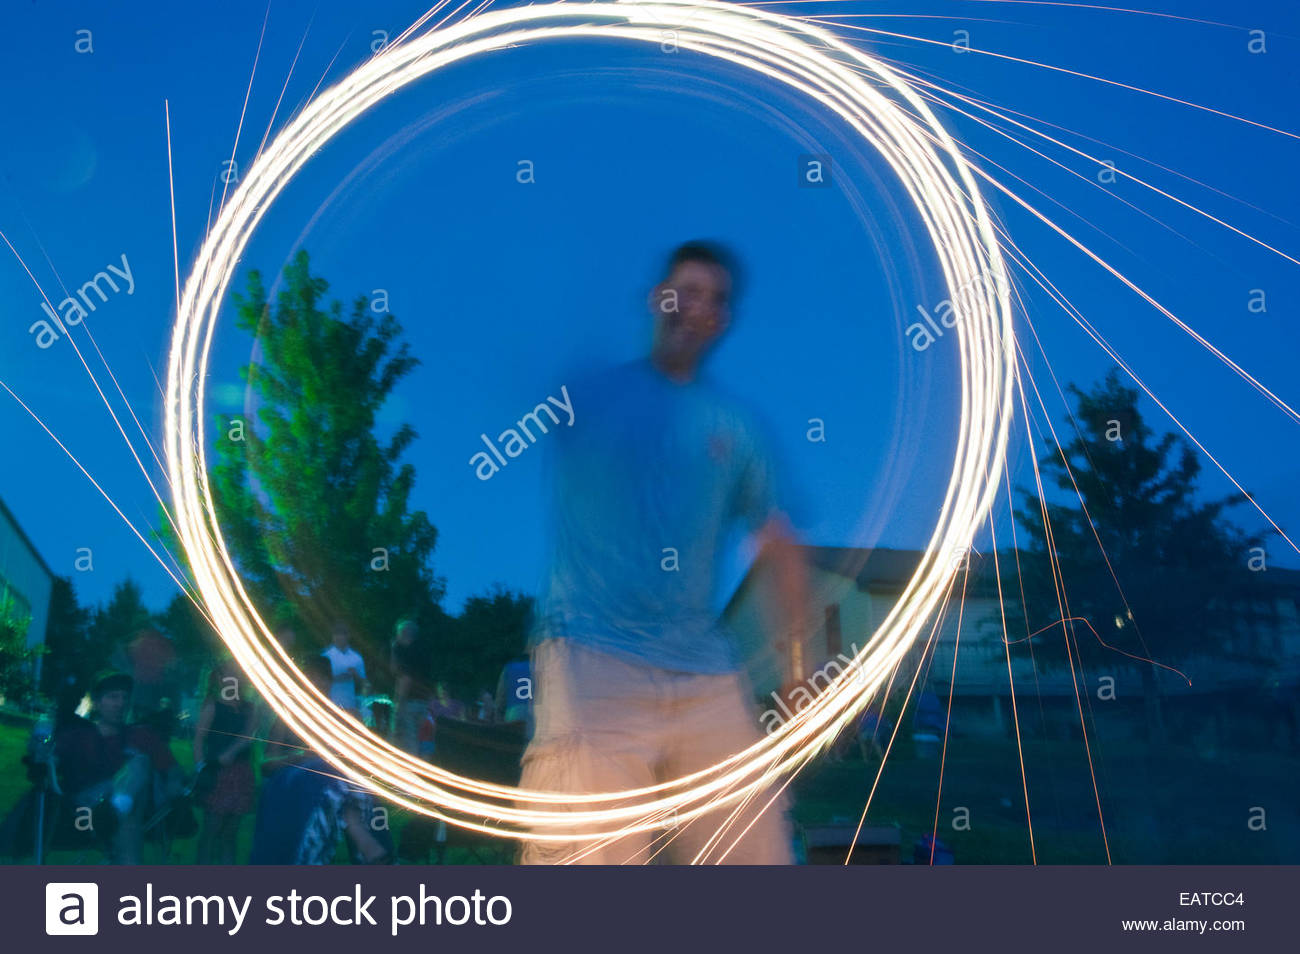 A man draws designs with a sparkler firework. - Stock Image